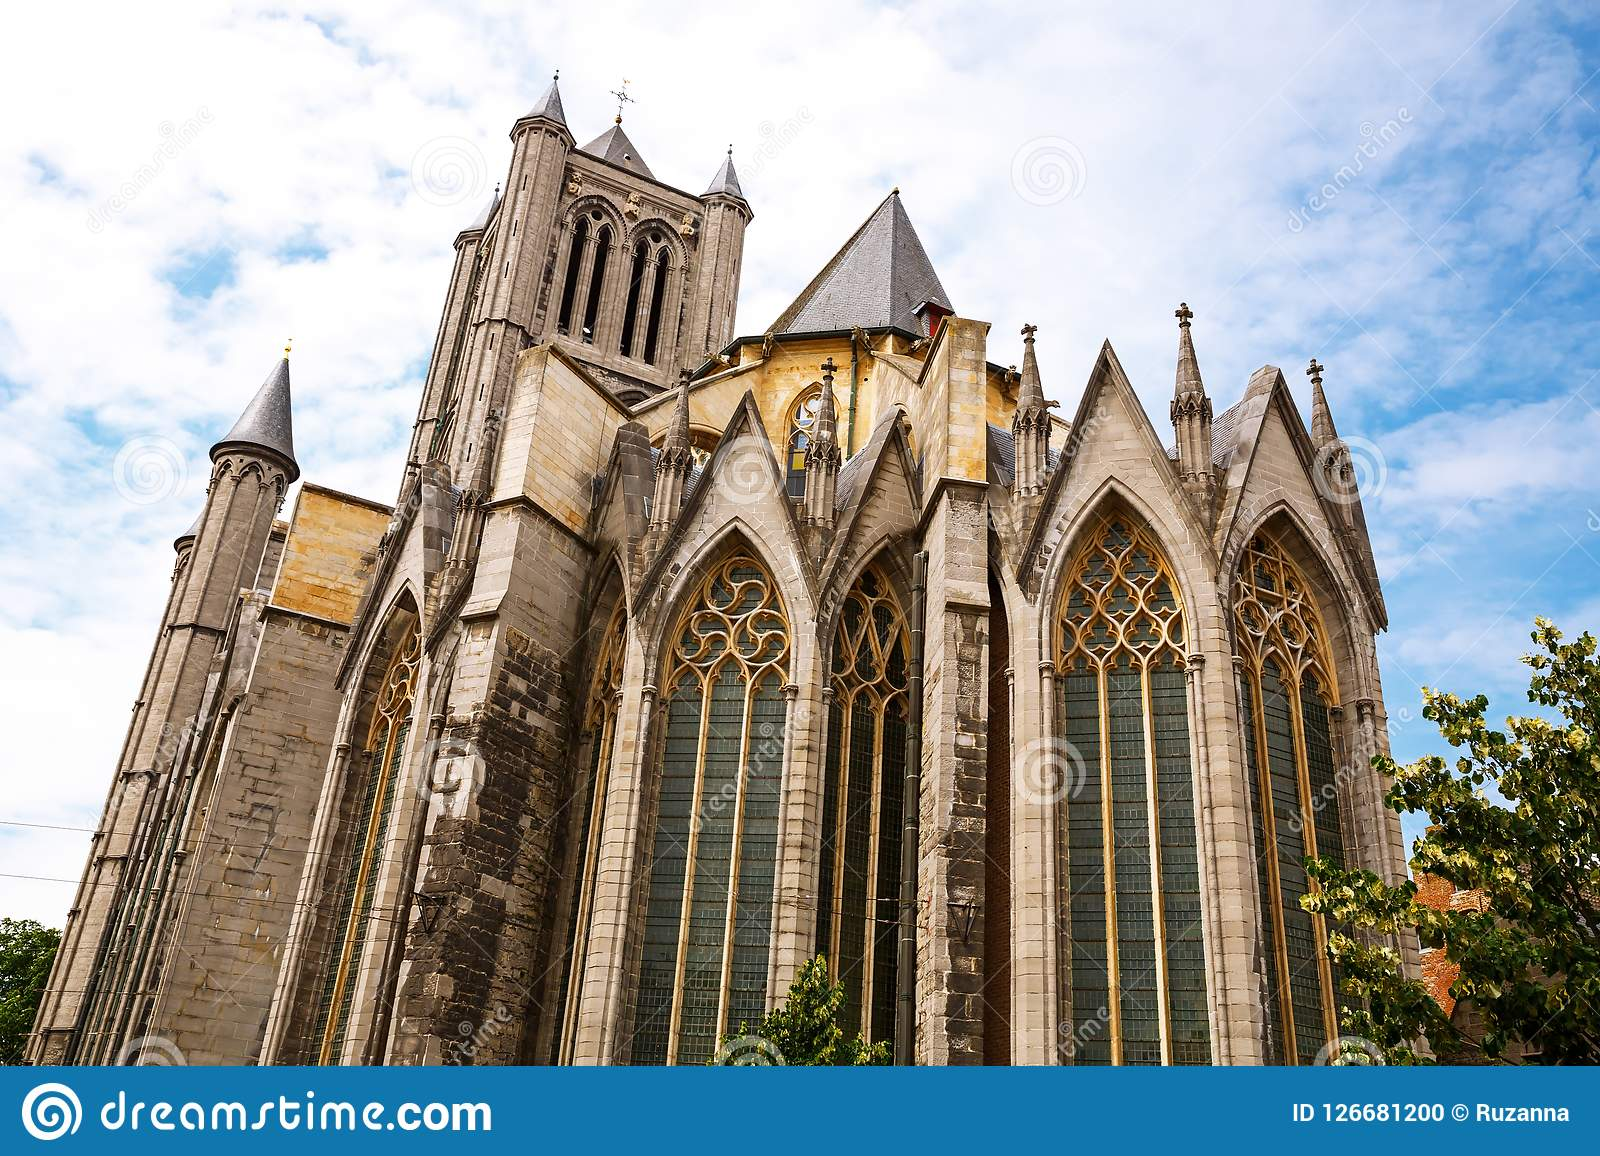 Saint Nicholas Church in Ghent. The view of the Saint Nicholas Church in the historical medieval city Ghent, Belgium Stock Photo